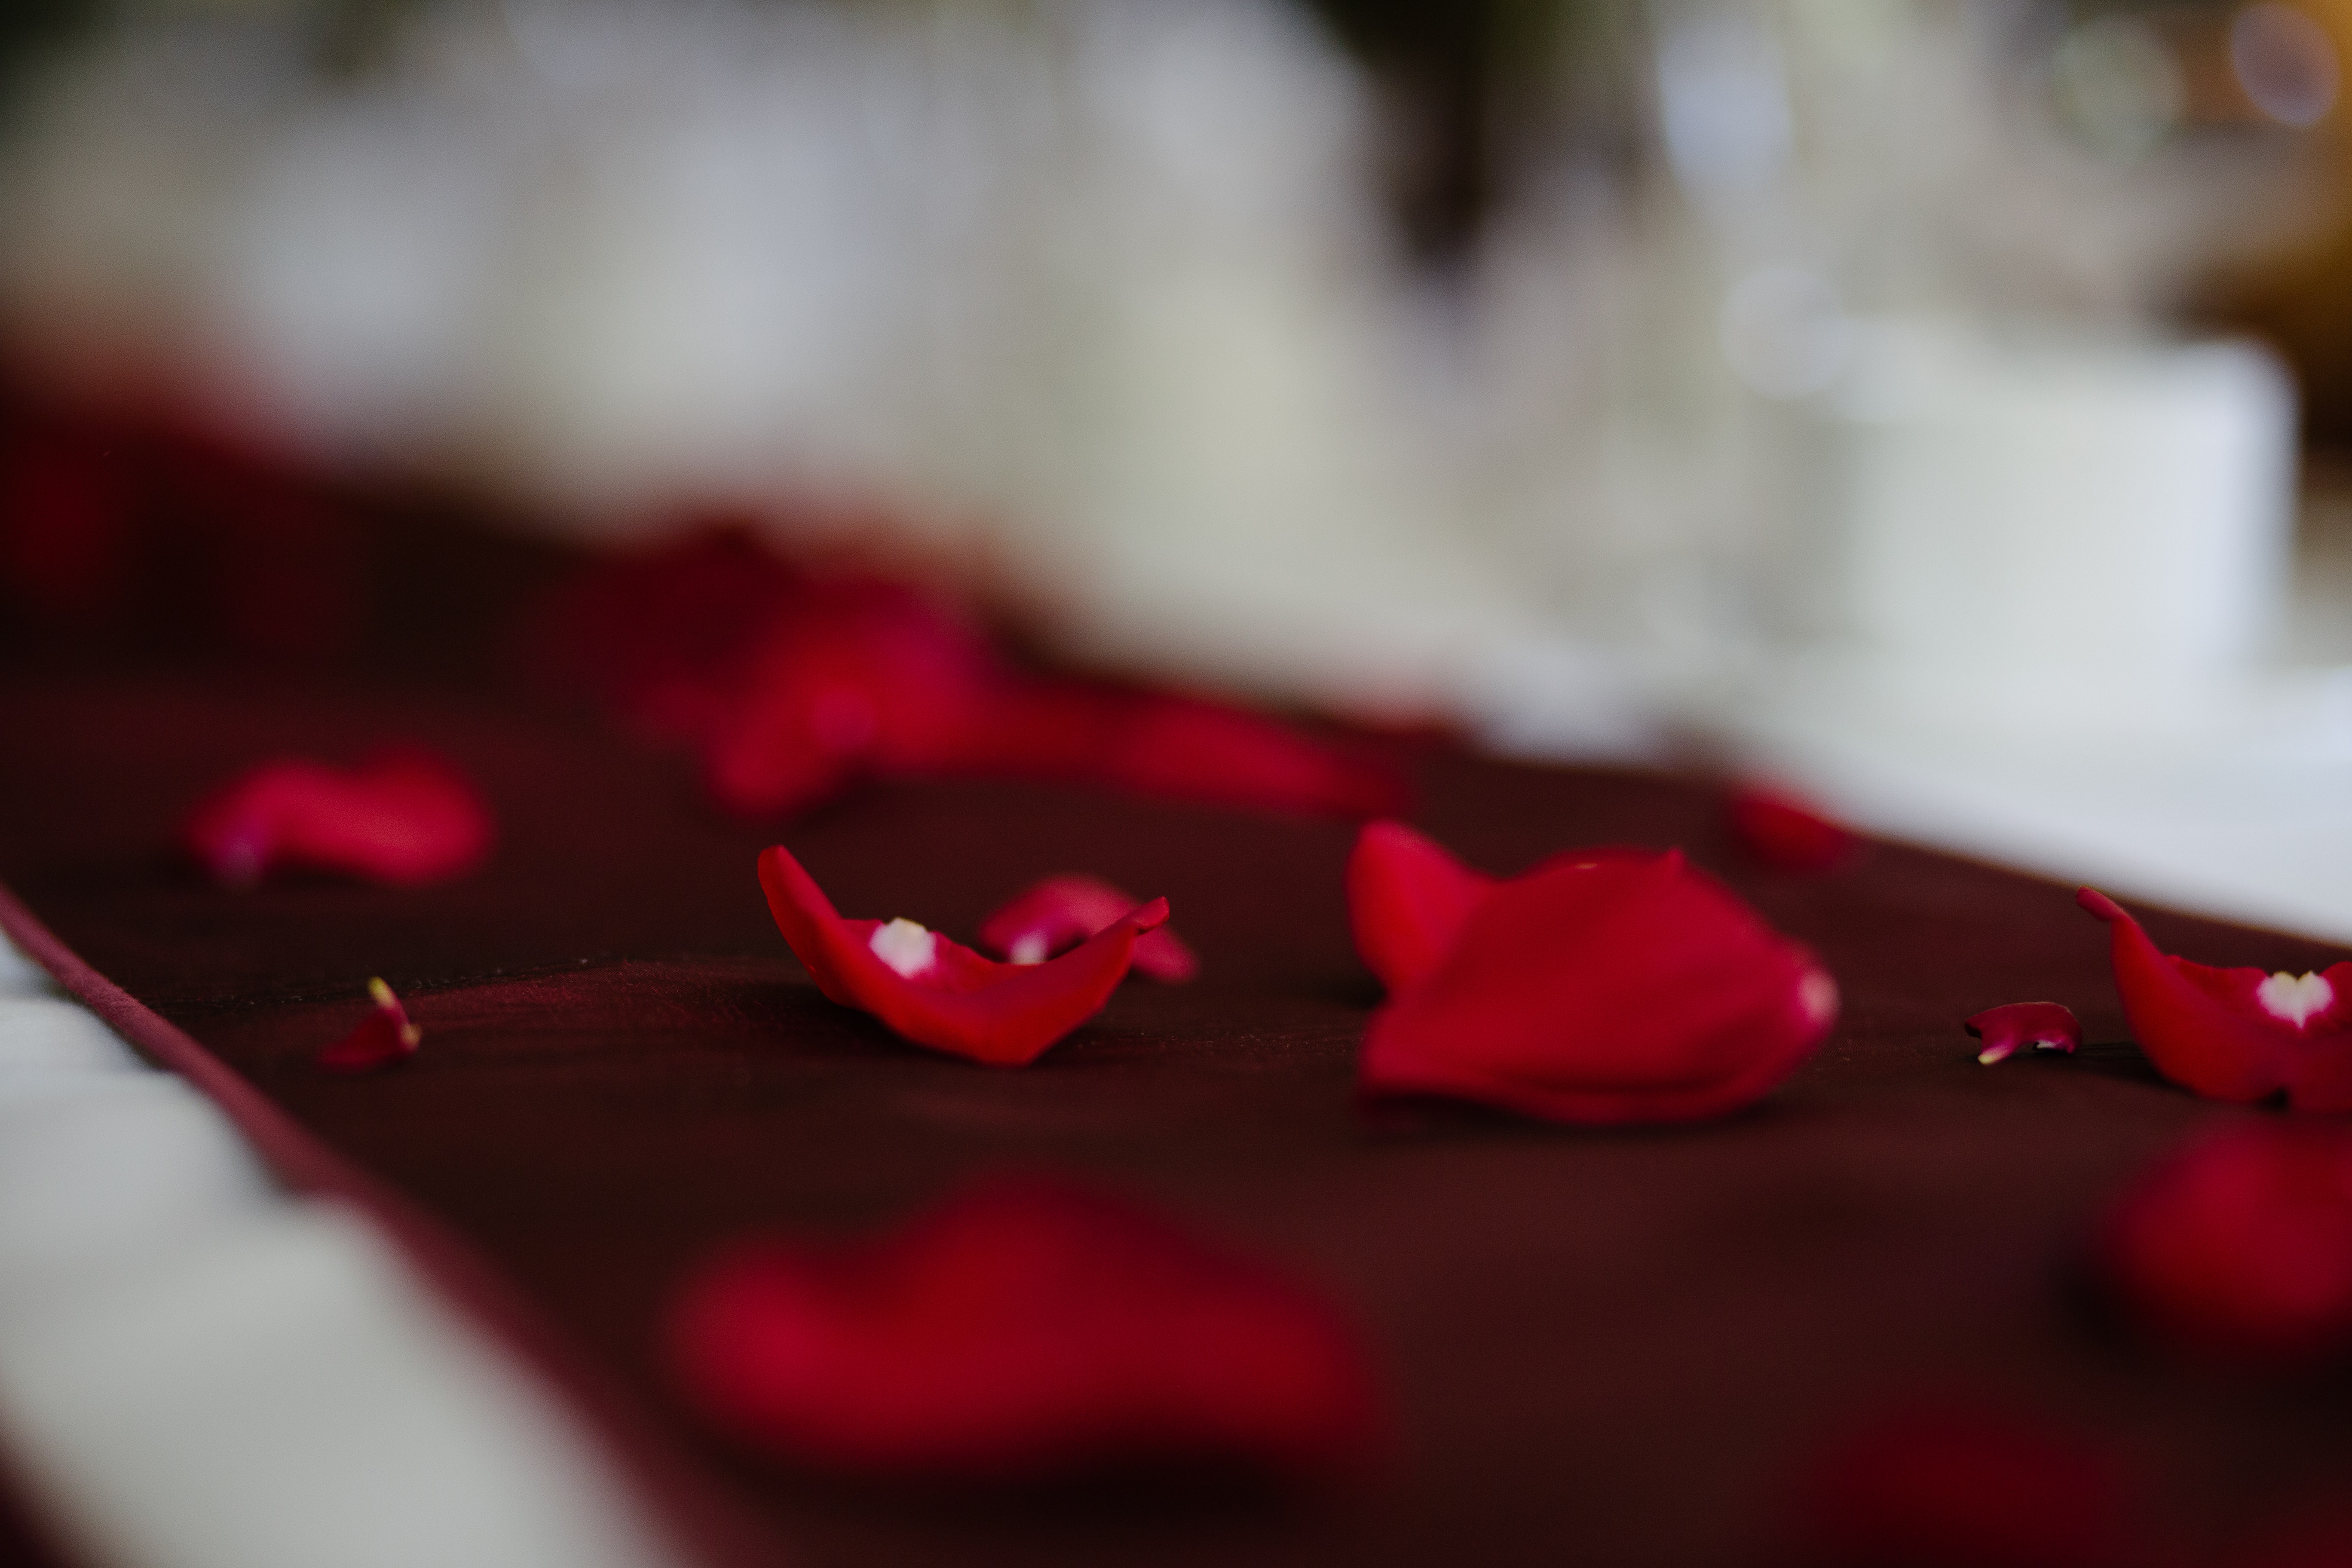 red petaled flower on red carpet close-up photography